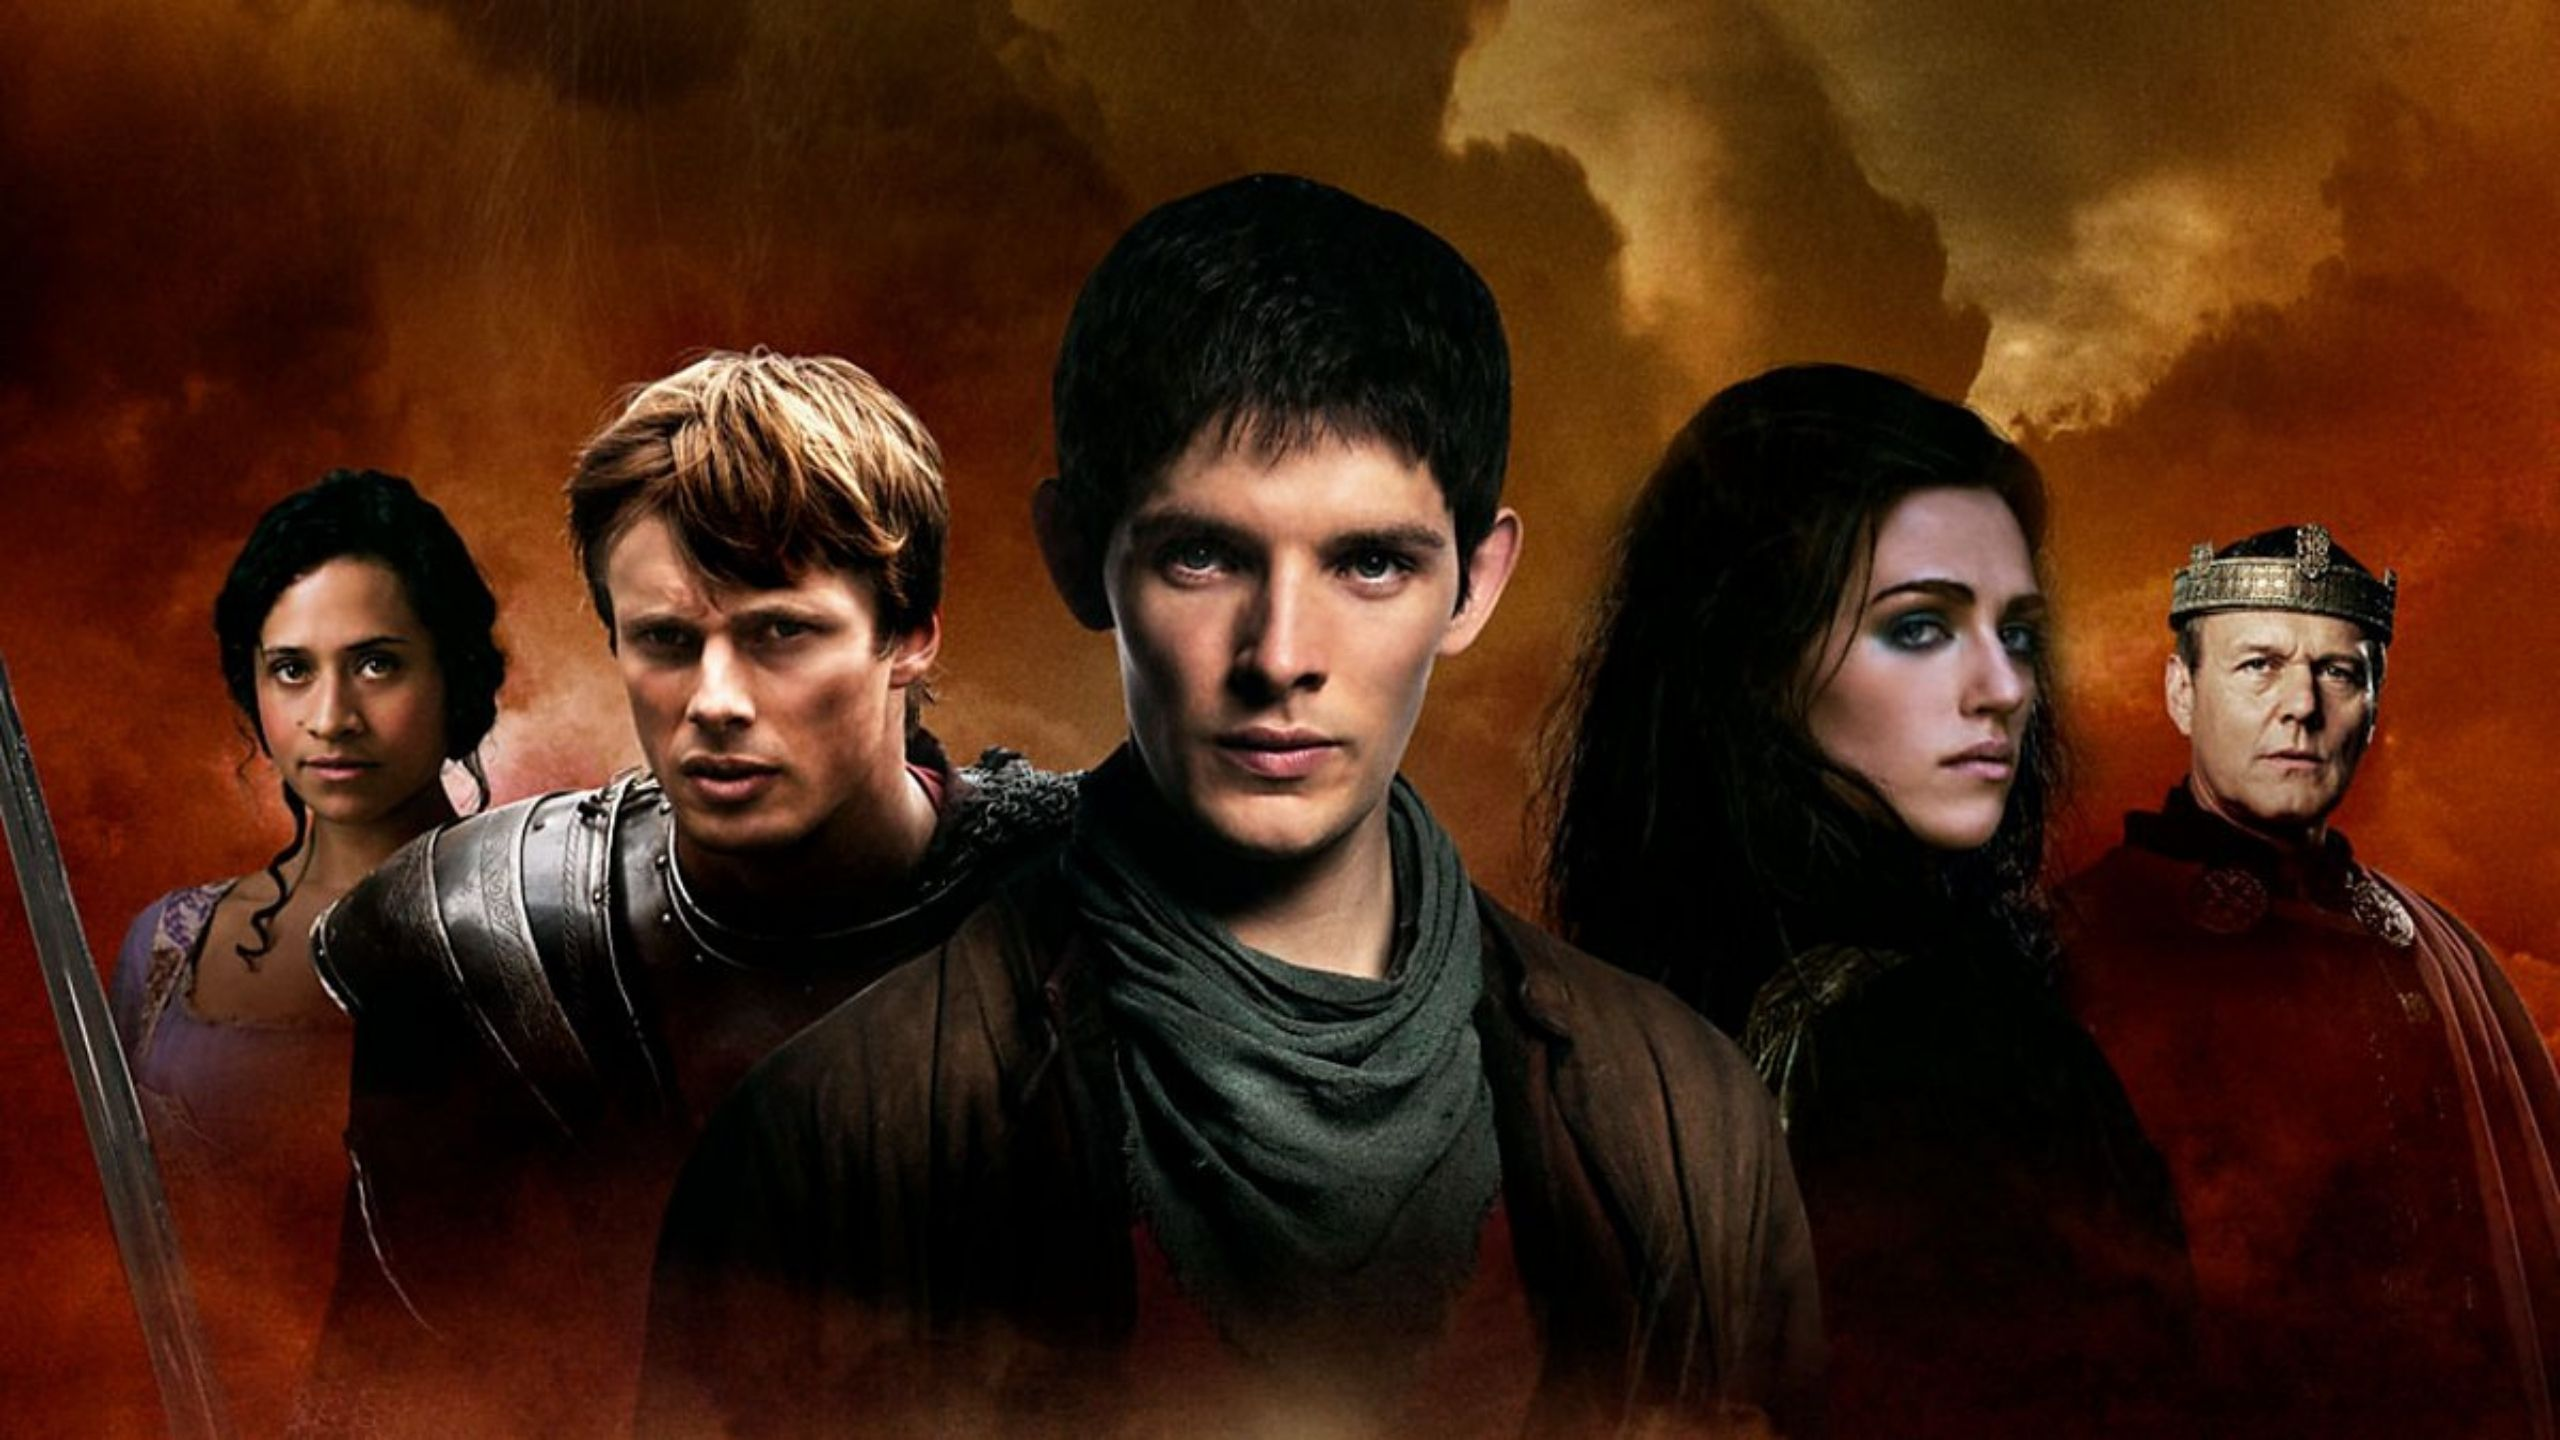 Promo image of the Merlin cast, all wearing traditional Medieval style clothing